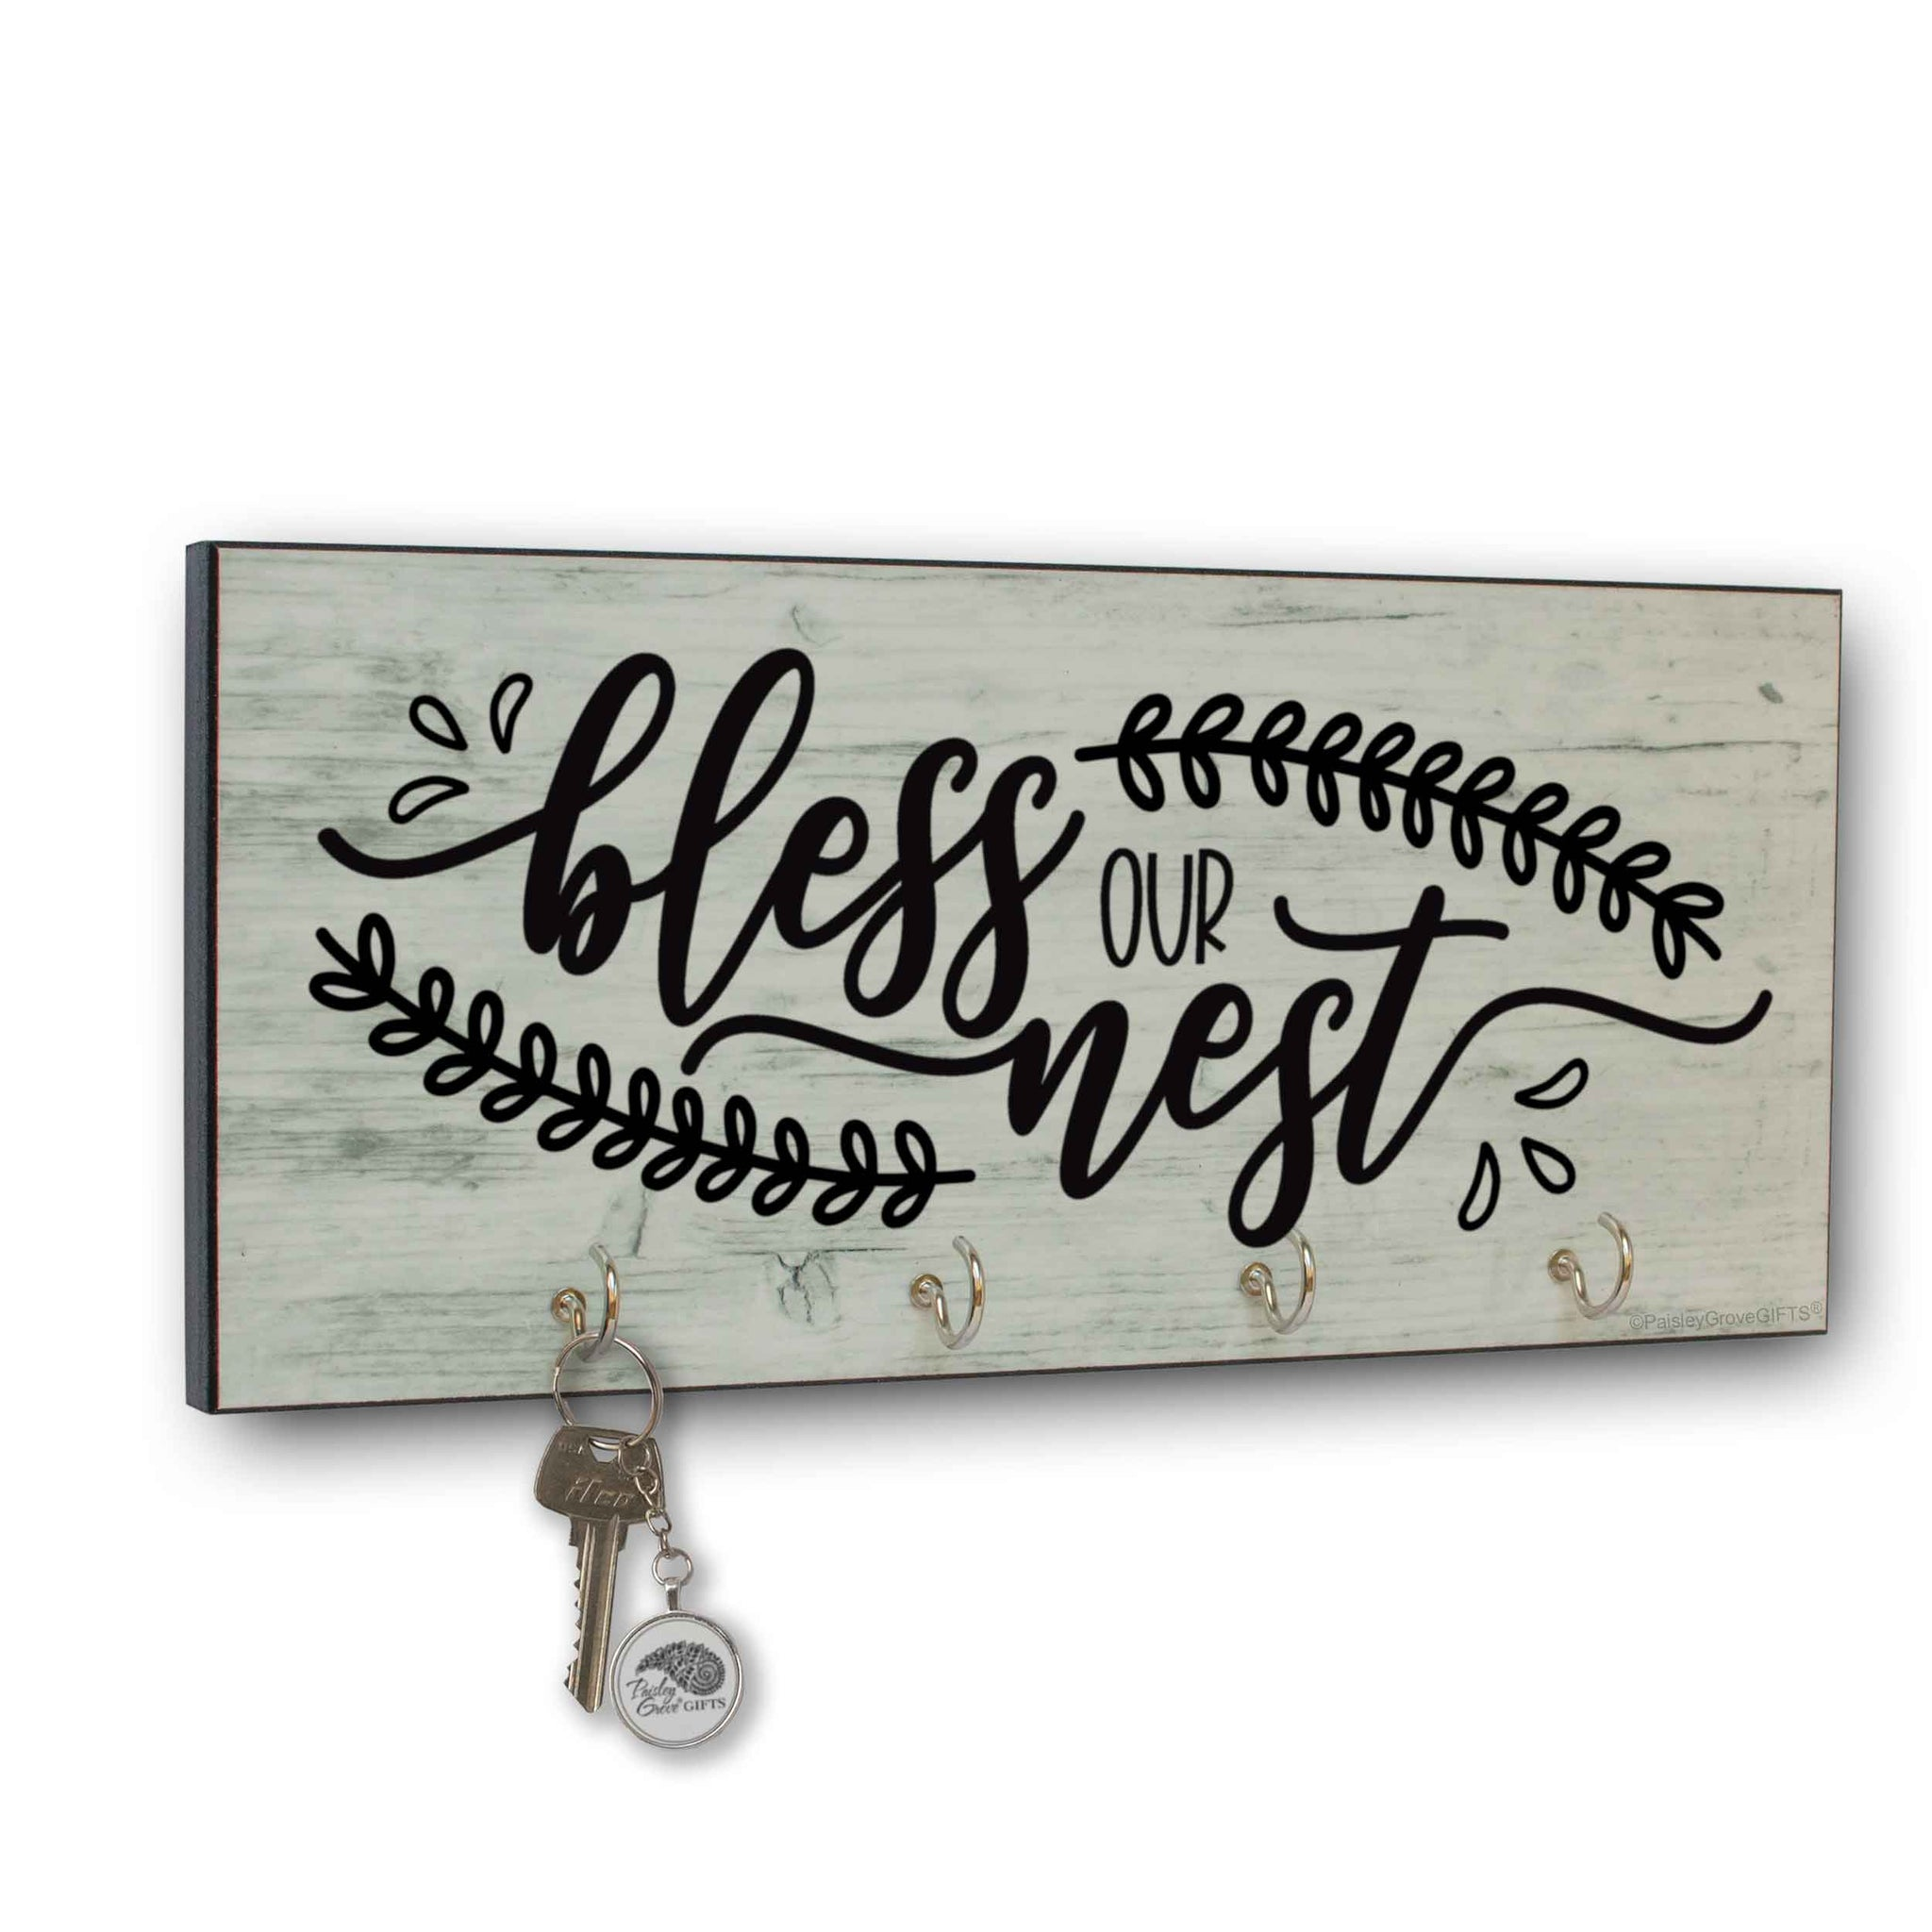 CopyrightPaisleyGroveGIFTS S310a1 Bless our Nest key holder for wall Farmhouse Entryway organizer